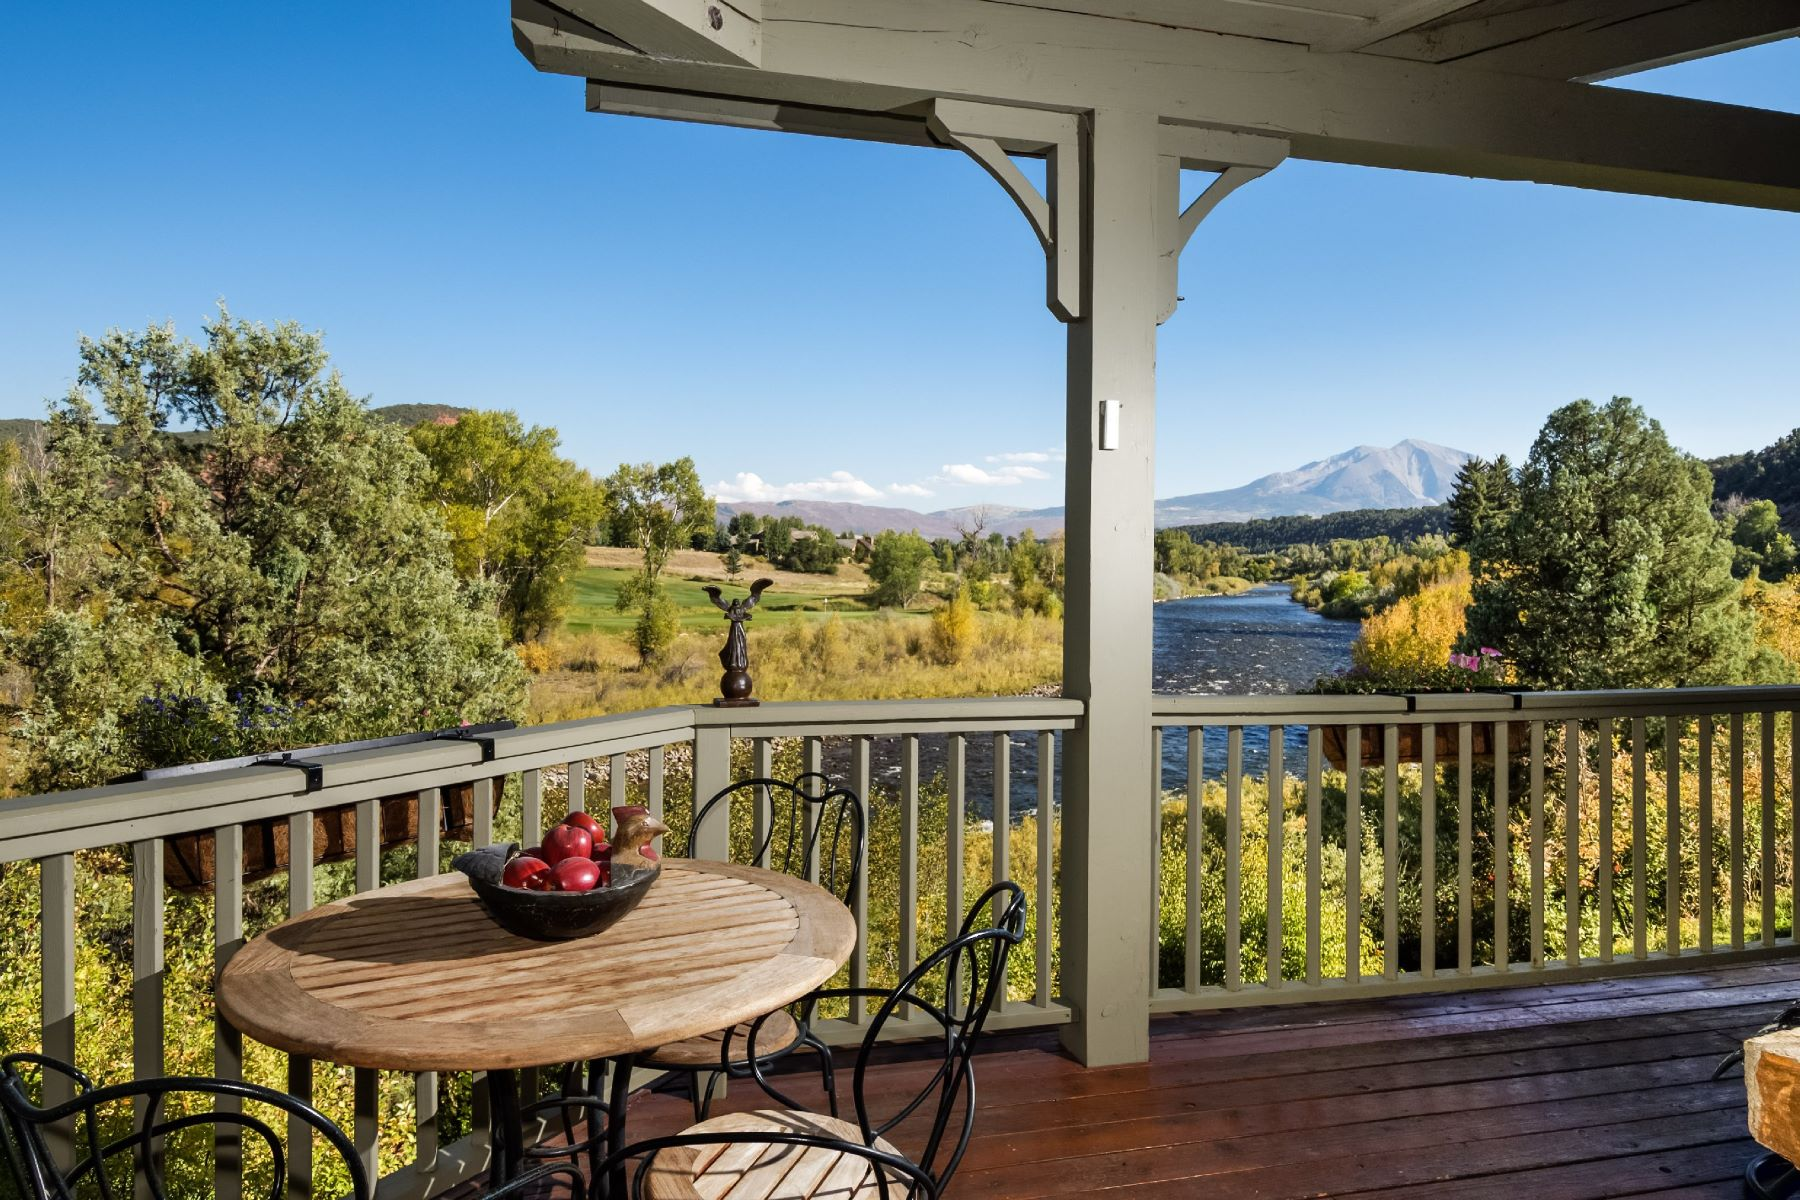 Single Family Home for Sale at Roaring Fork Mesa @ Aspen Glen 690 Brookie Drive Carbondale, Colorado, 81623 United States